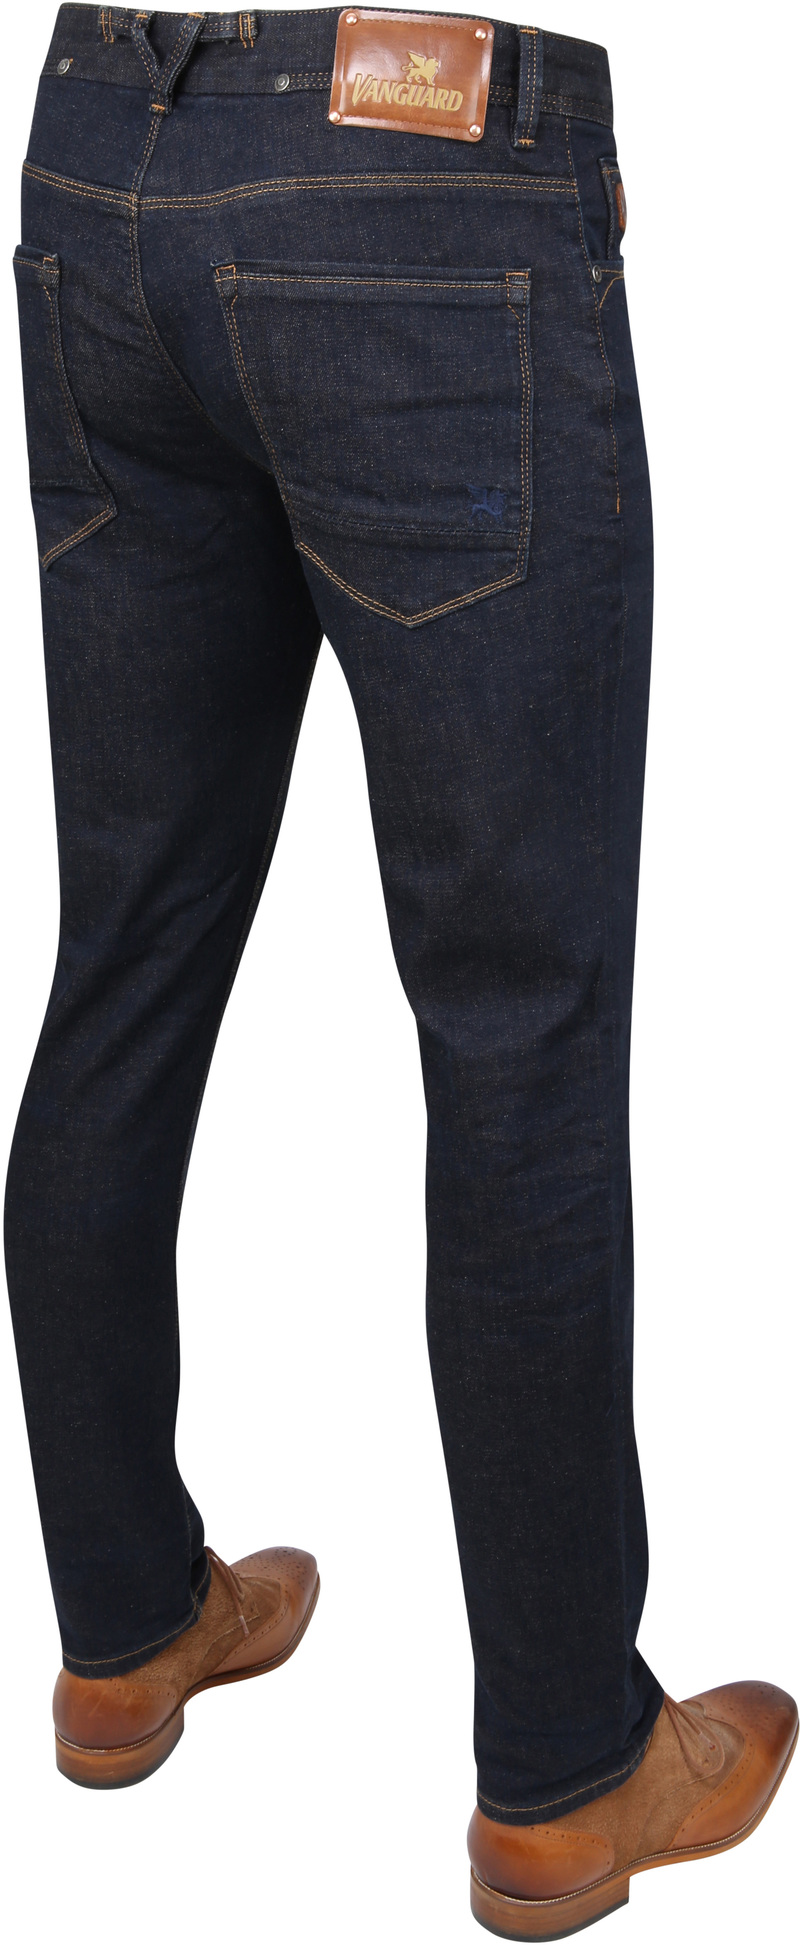 Vanguard V7 Slim Jeans Stretch CCR photo 3